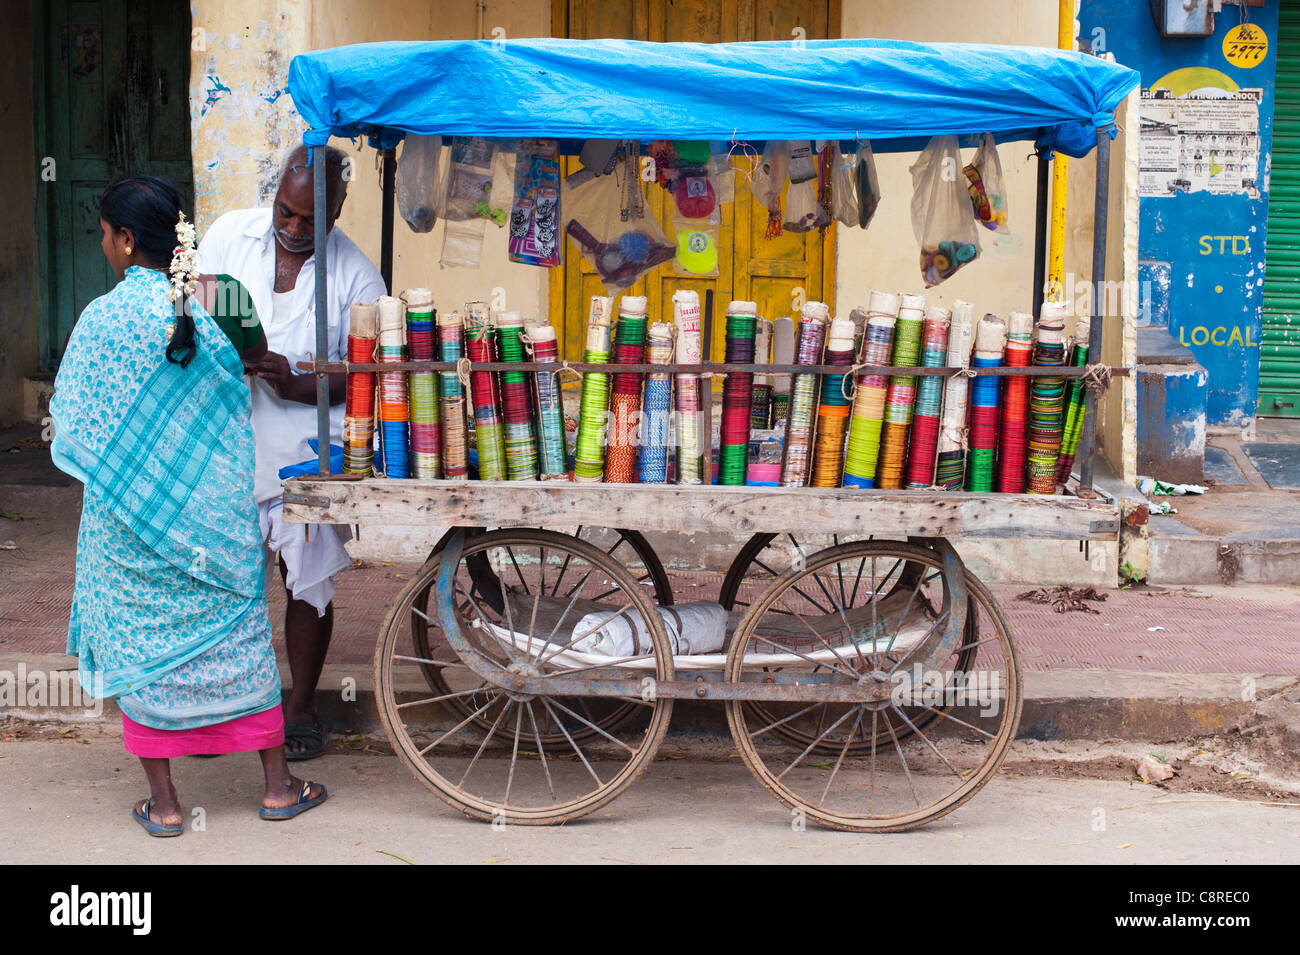 Indian man selling bangles from a wooden cart on an indian ...